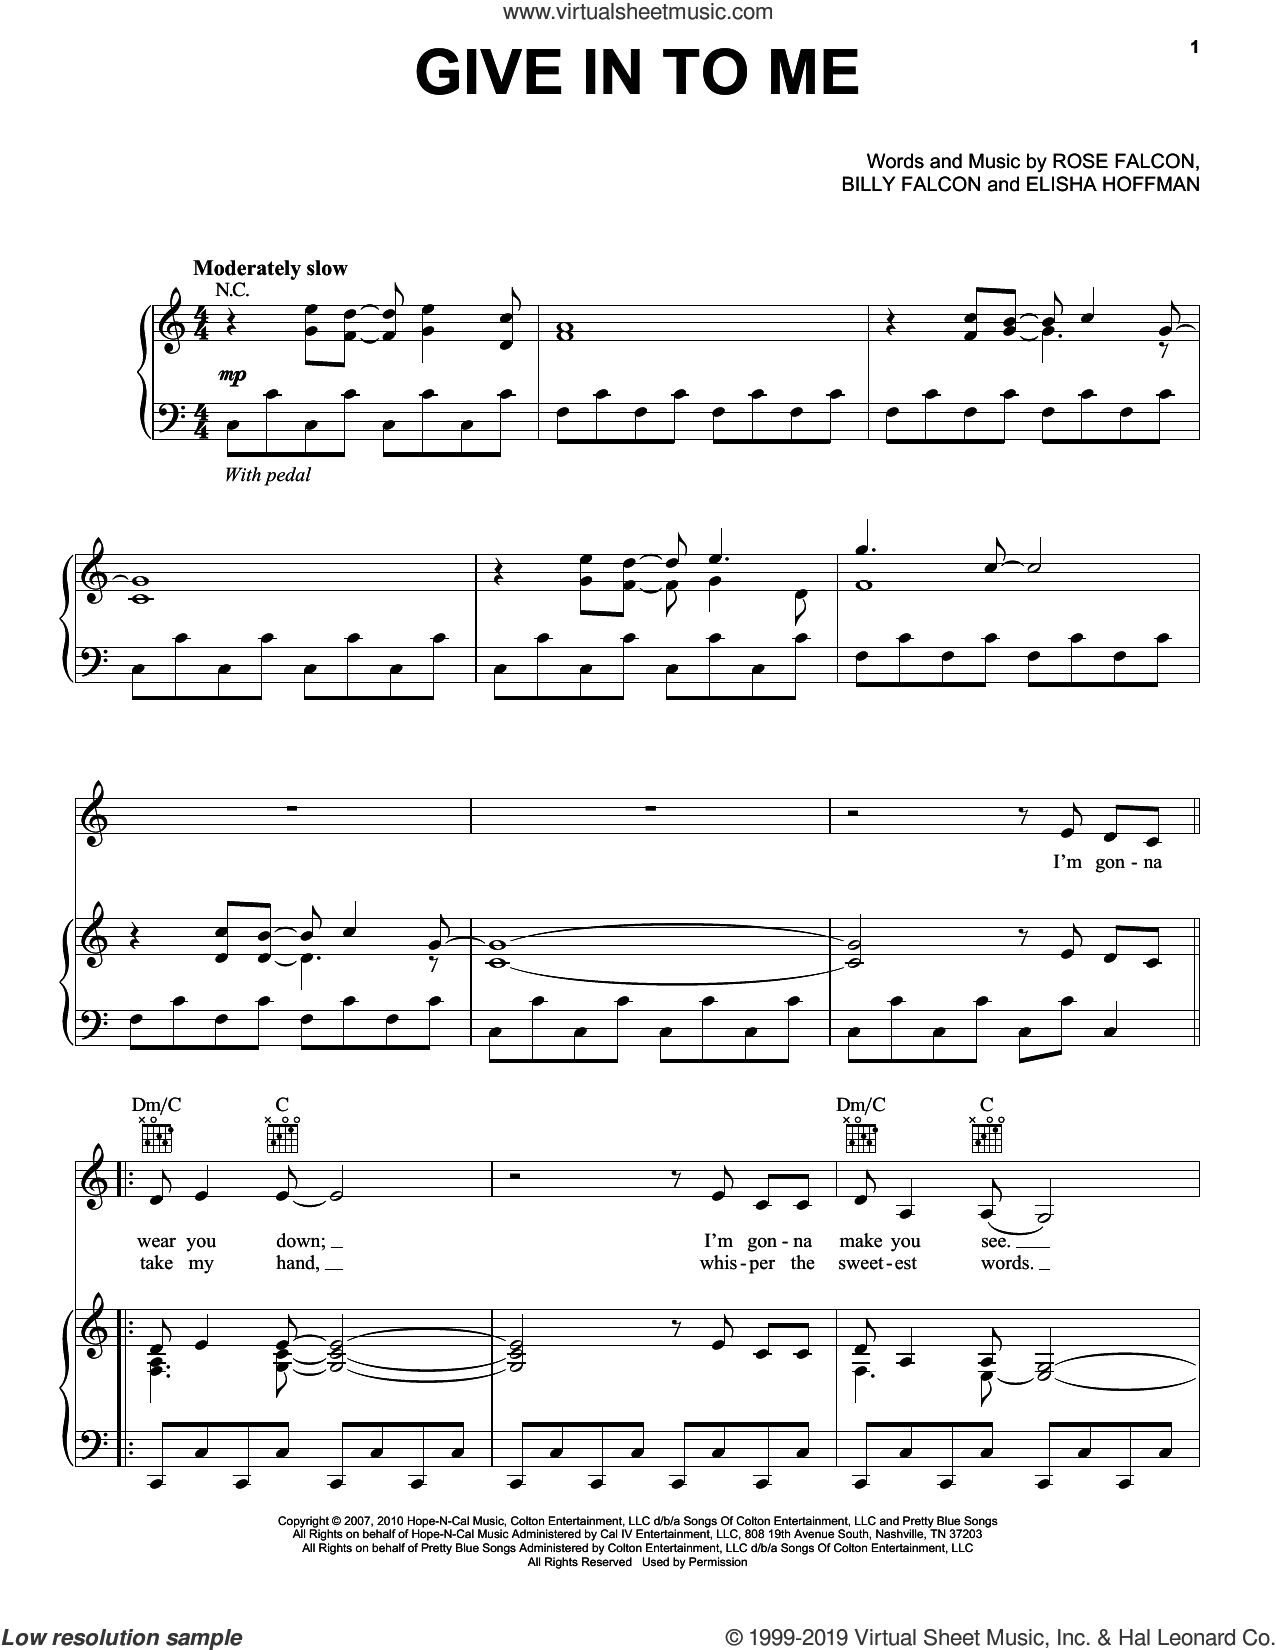 Give In To Me (from Country Strong) sheet music for voice, piano or guitar by Faith Hill, Billy Falcon, Elisha Hoffman and Rose Falcon, intermediate skill level